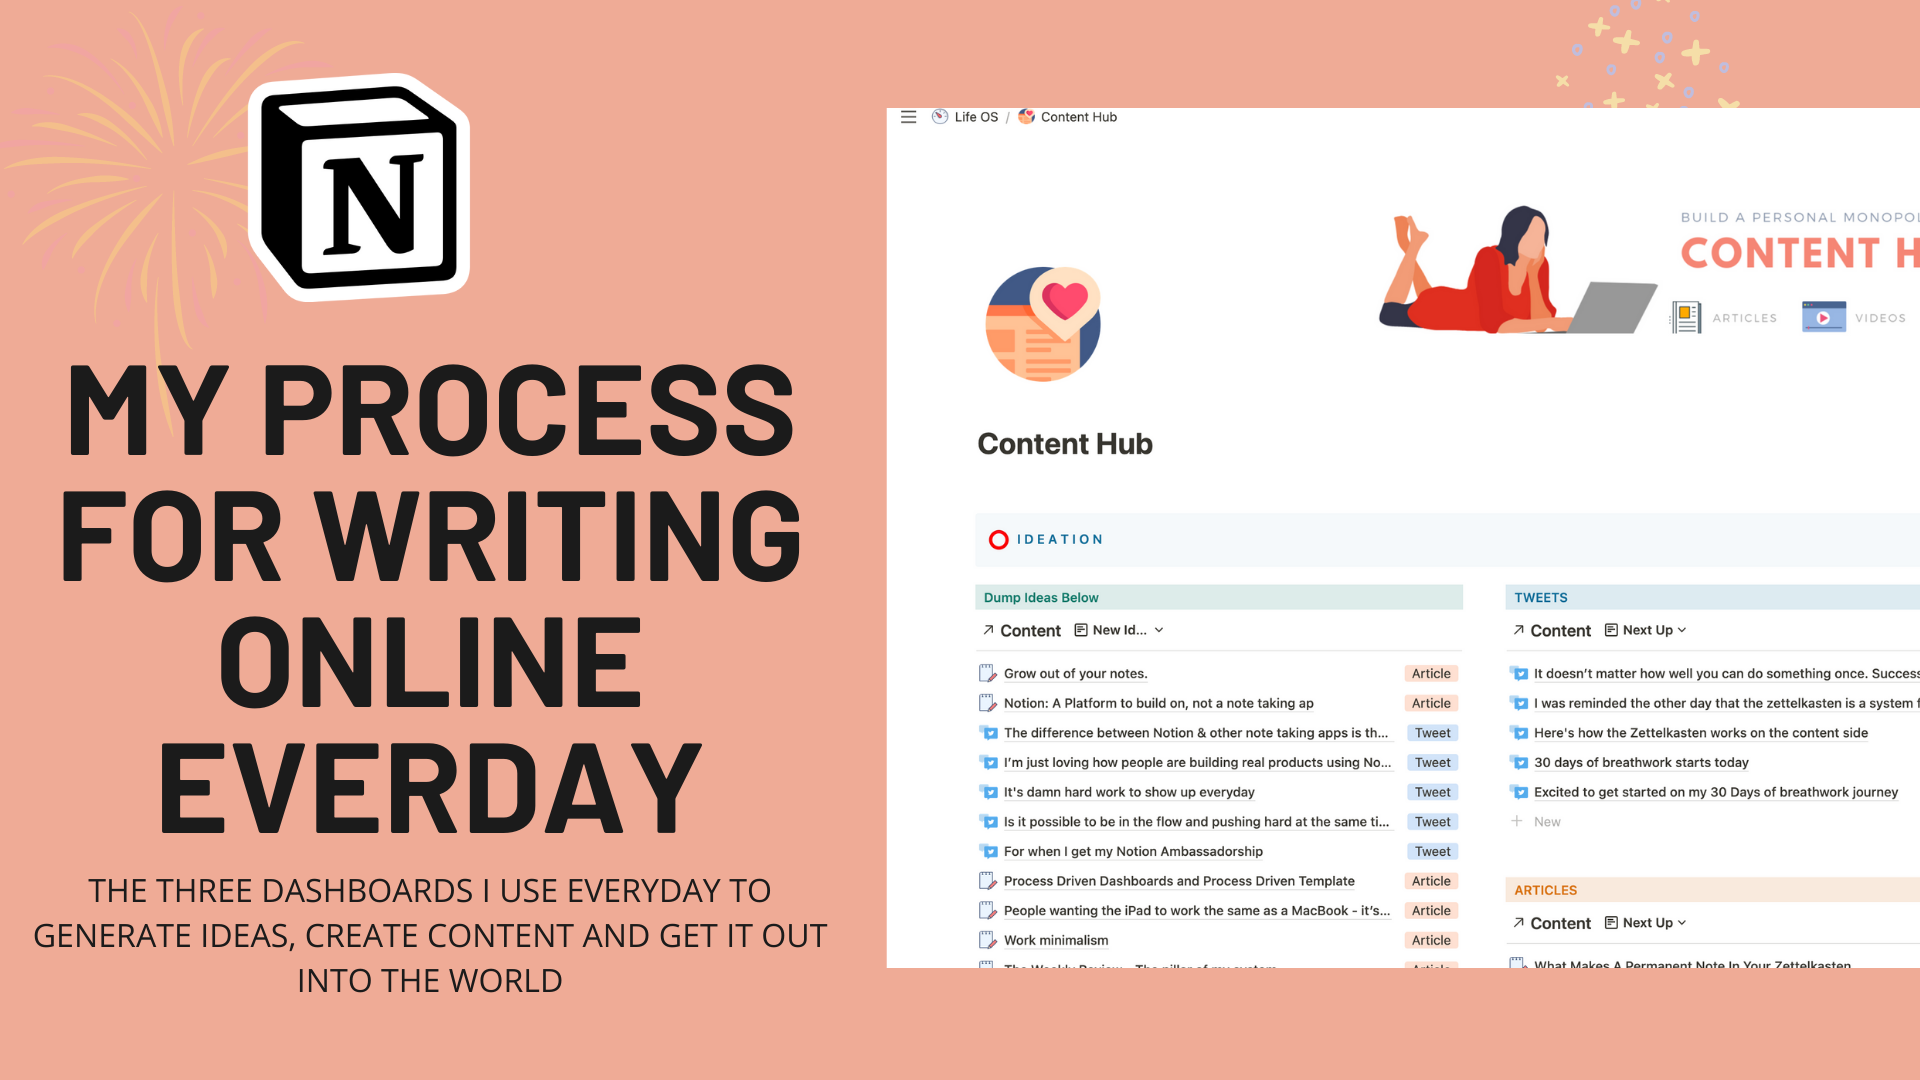 My Process For Writing Online every day: Notion Flow Dashboards